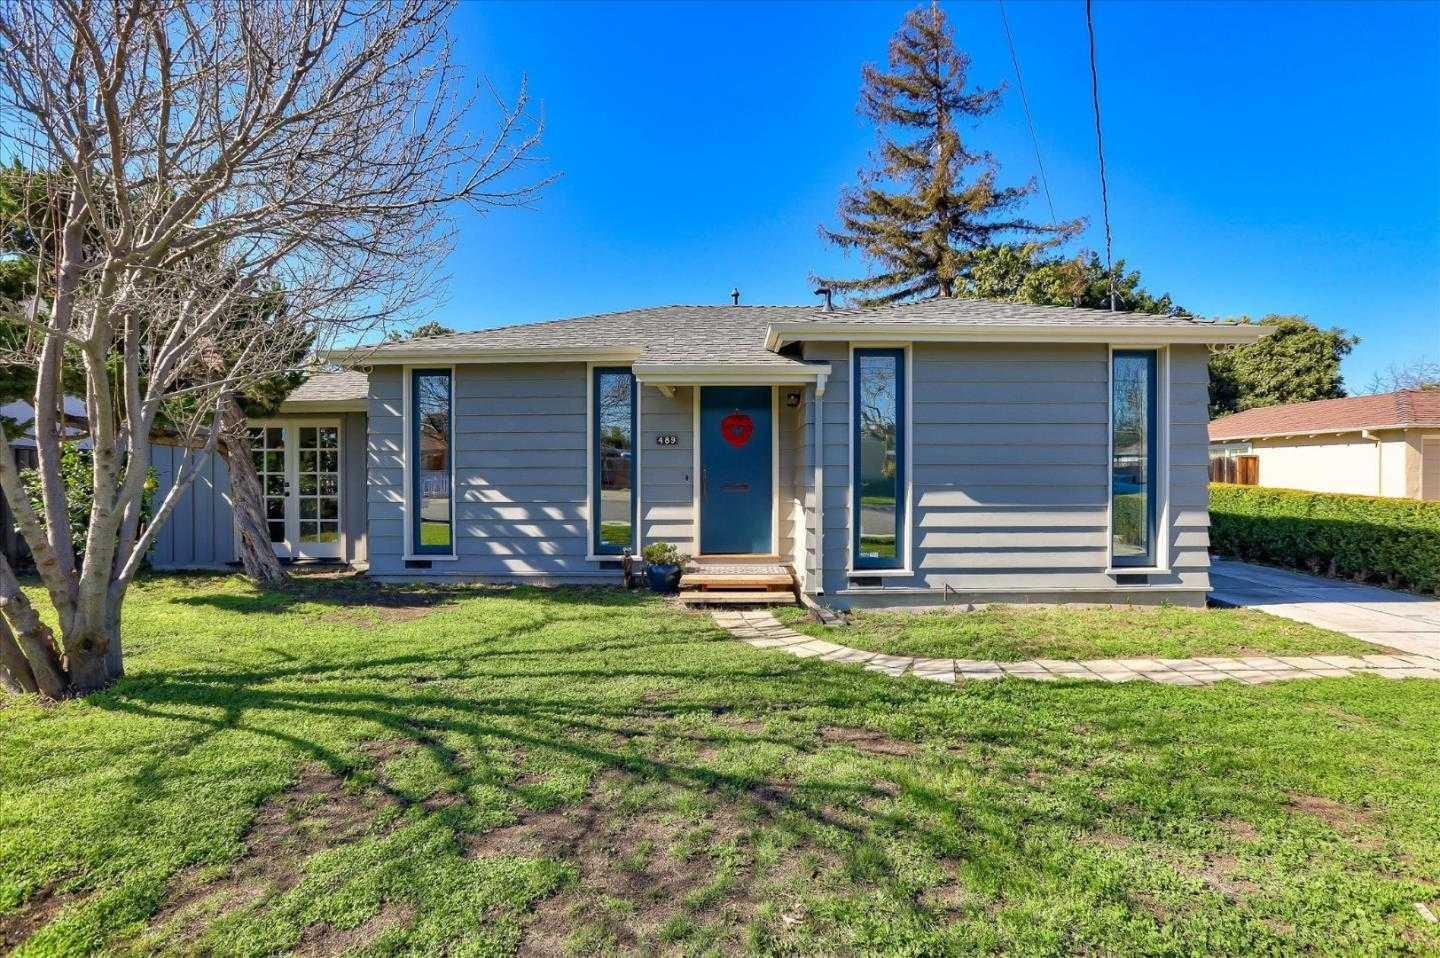 $1,098,000 - 2Br/2Ba -  for Sale in San Jose